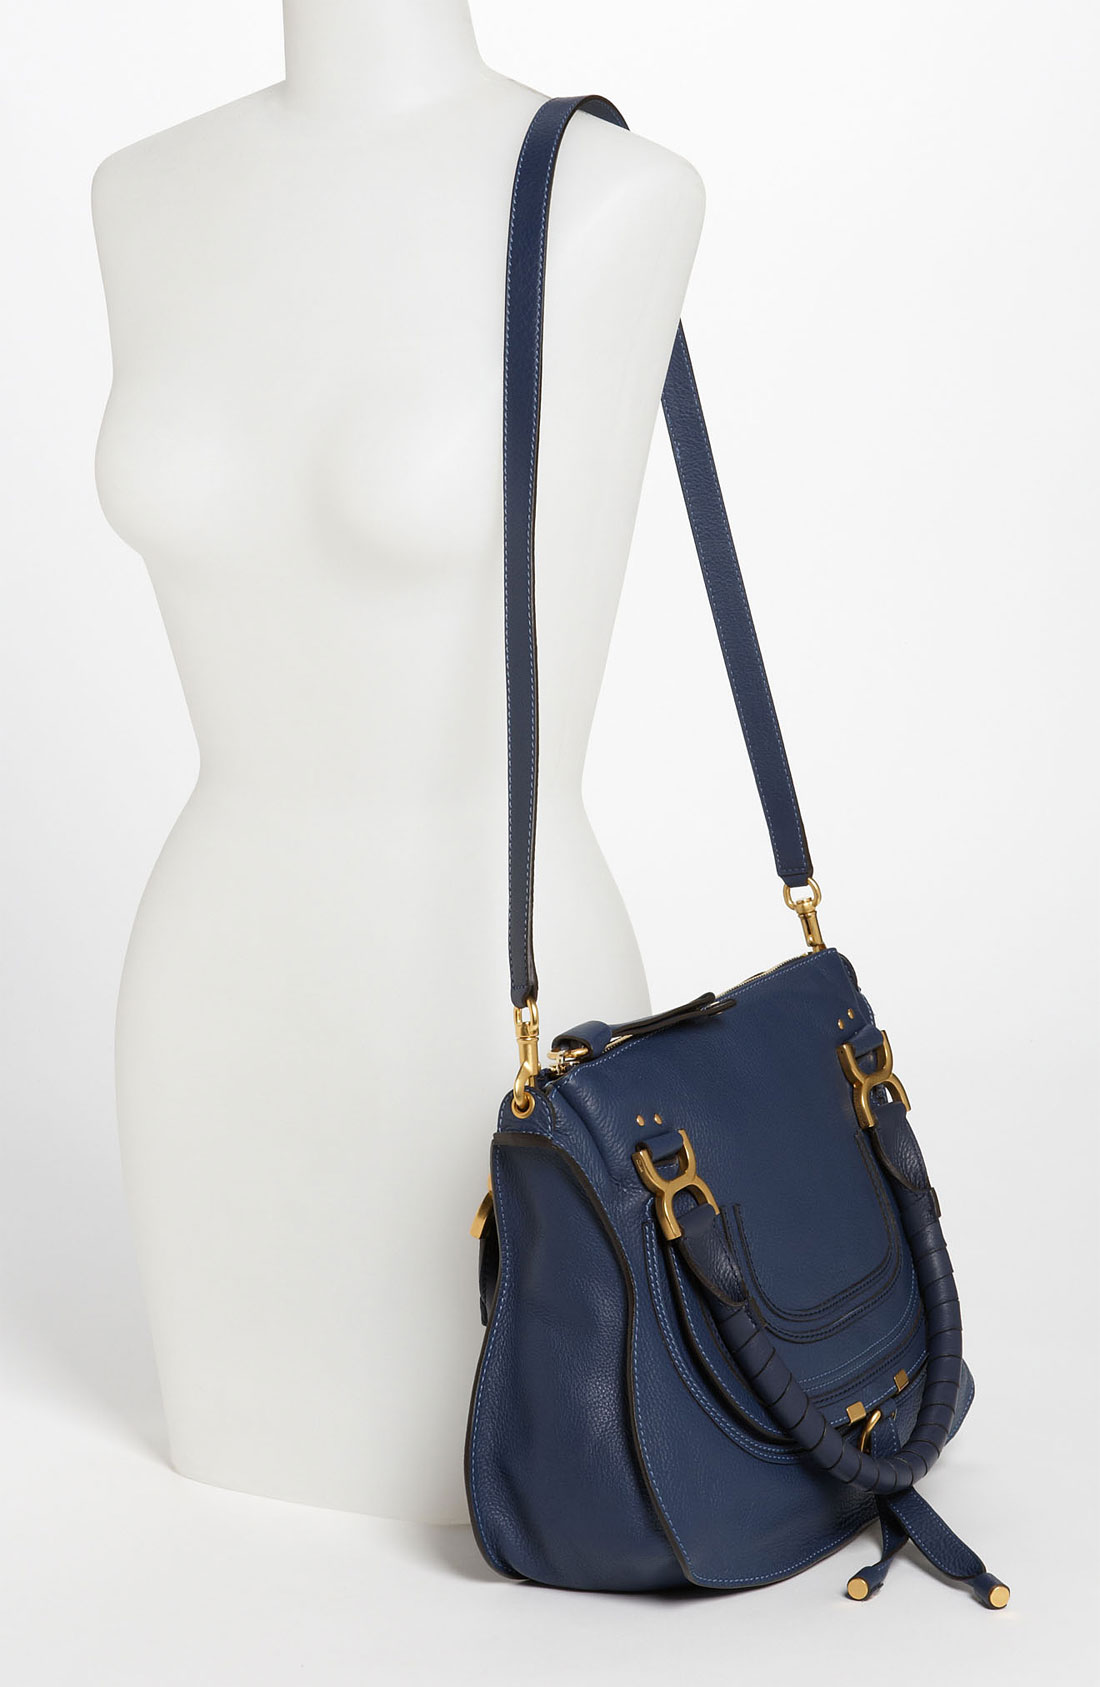 chloe marcie gray - Chlo�� Marcie Small Leather Satchel in Blue (Royal) | Lyst